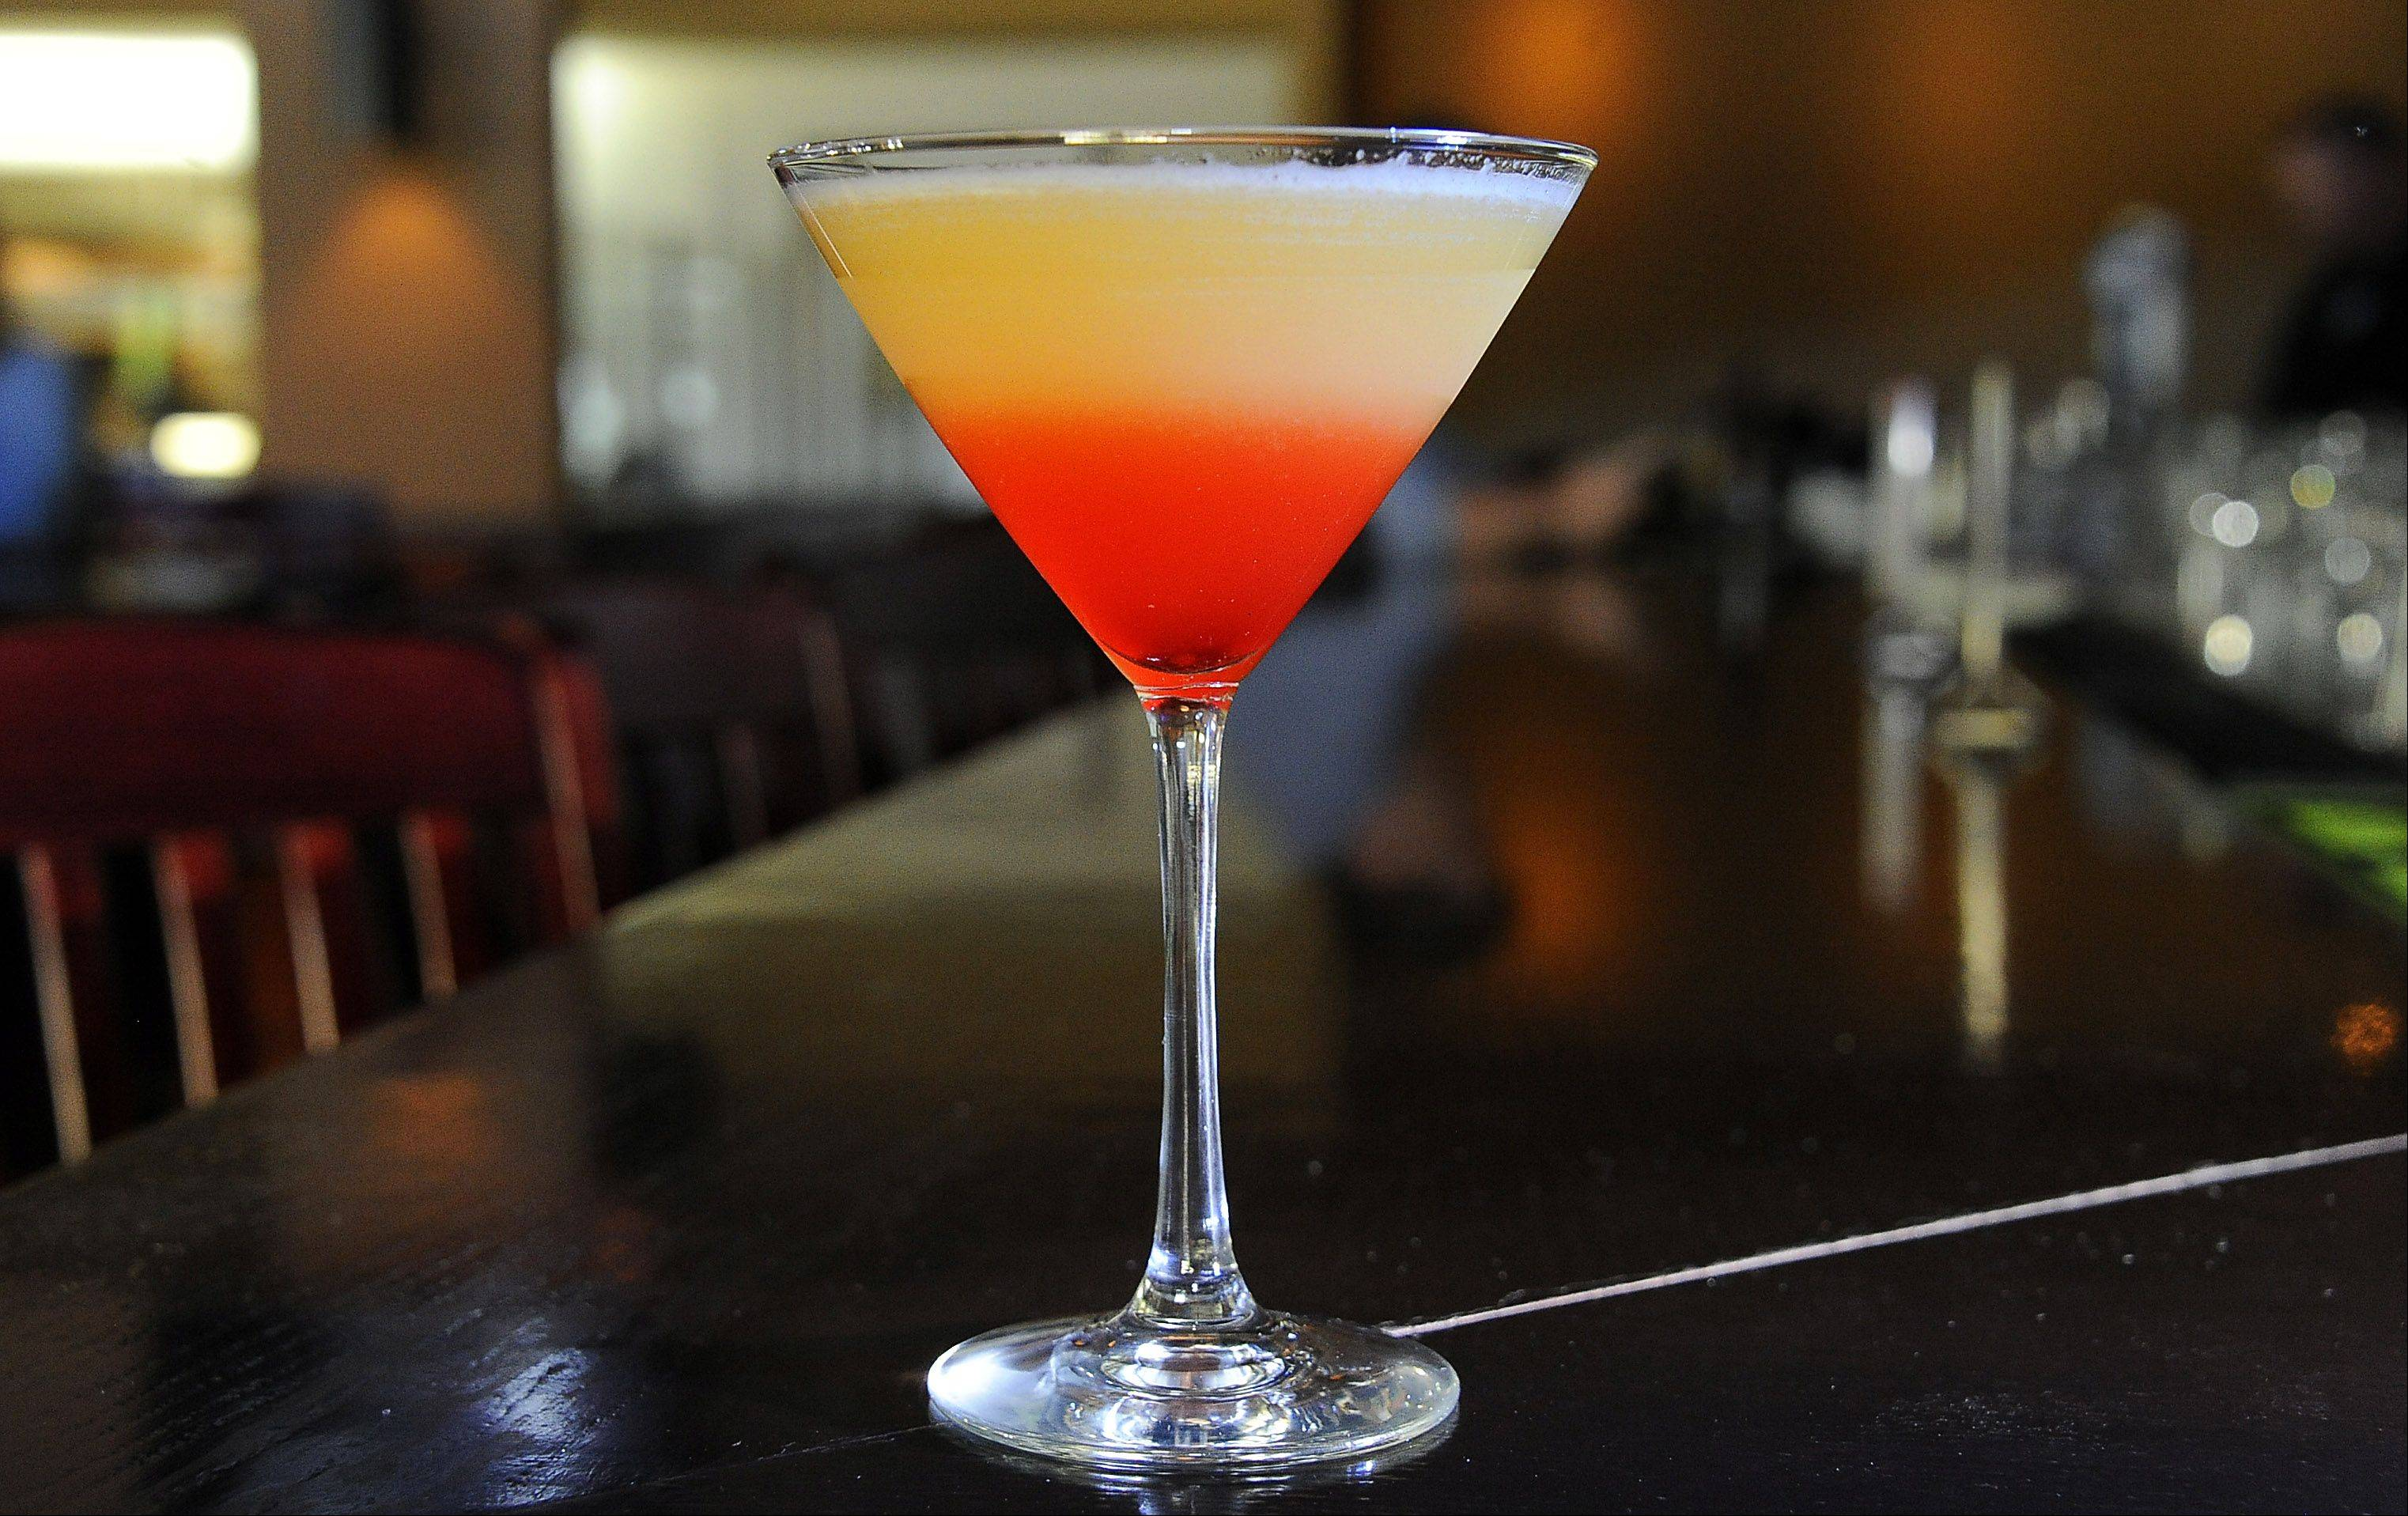 Cool off -- and save calories -- with the Bikini-tini at Wickets Bar and Grill in Schaumburg.